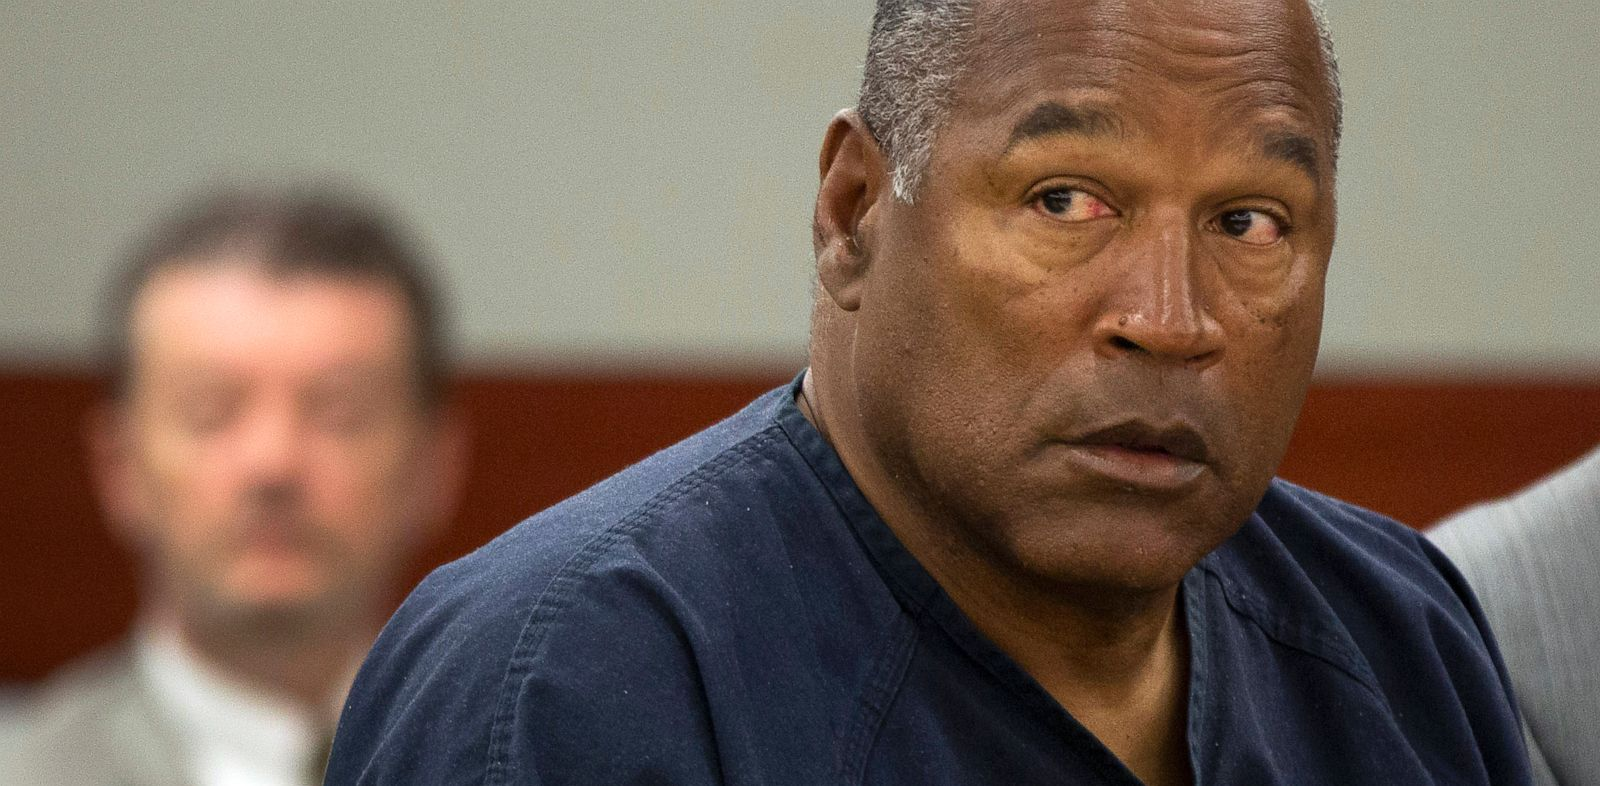 PHOTO: O.J. Simpson Awaits Parole Board Decision